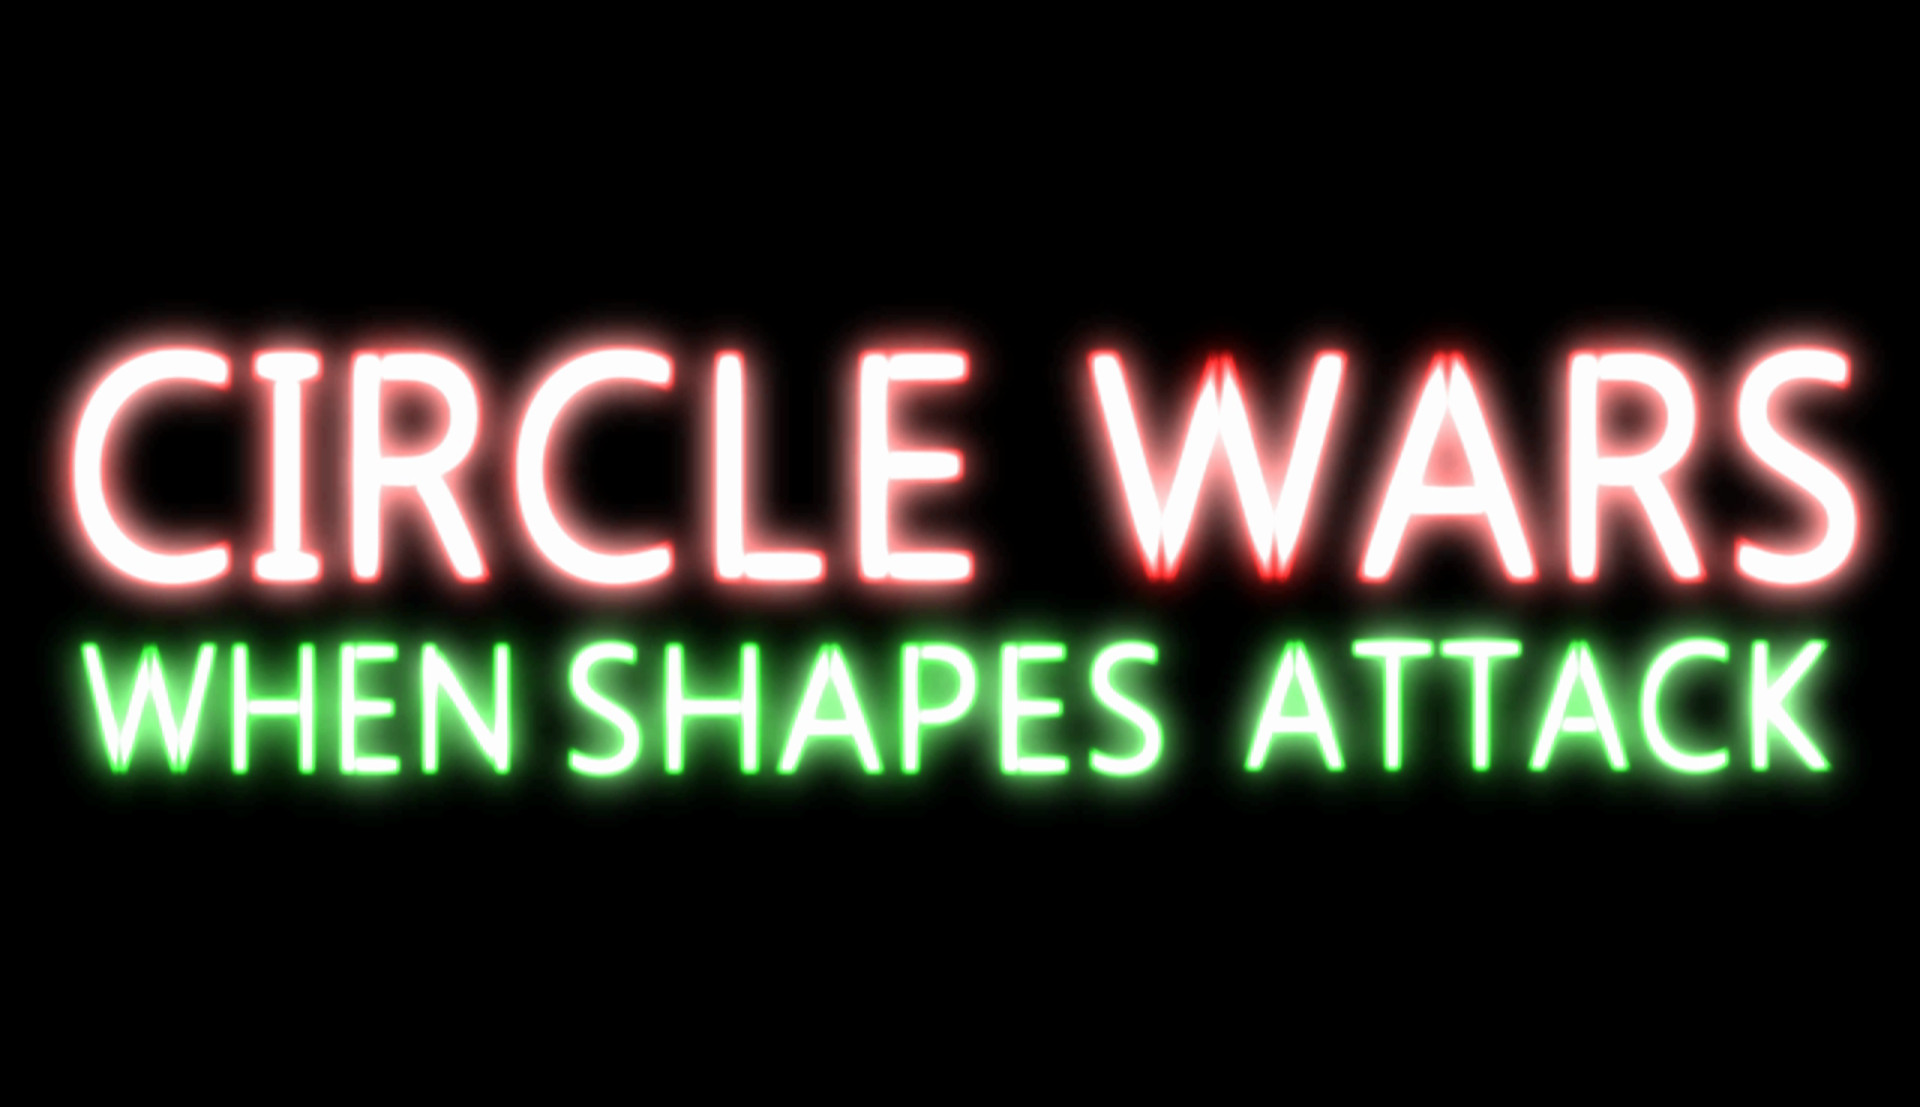 Circle Wars: When Shapes Attack